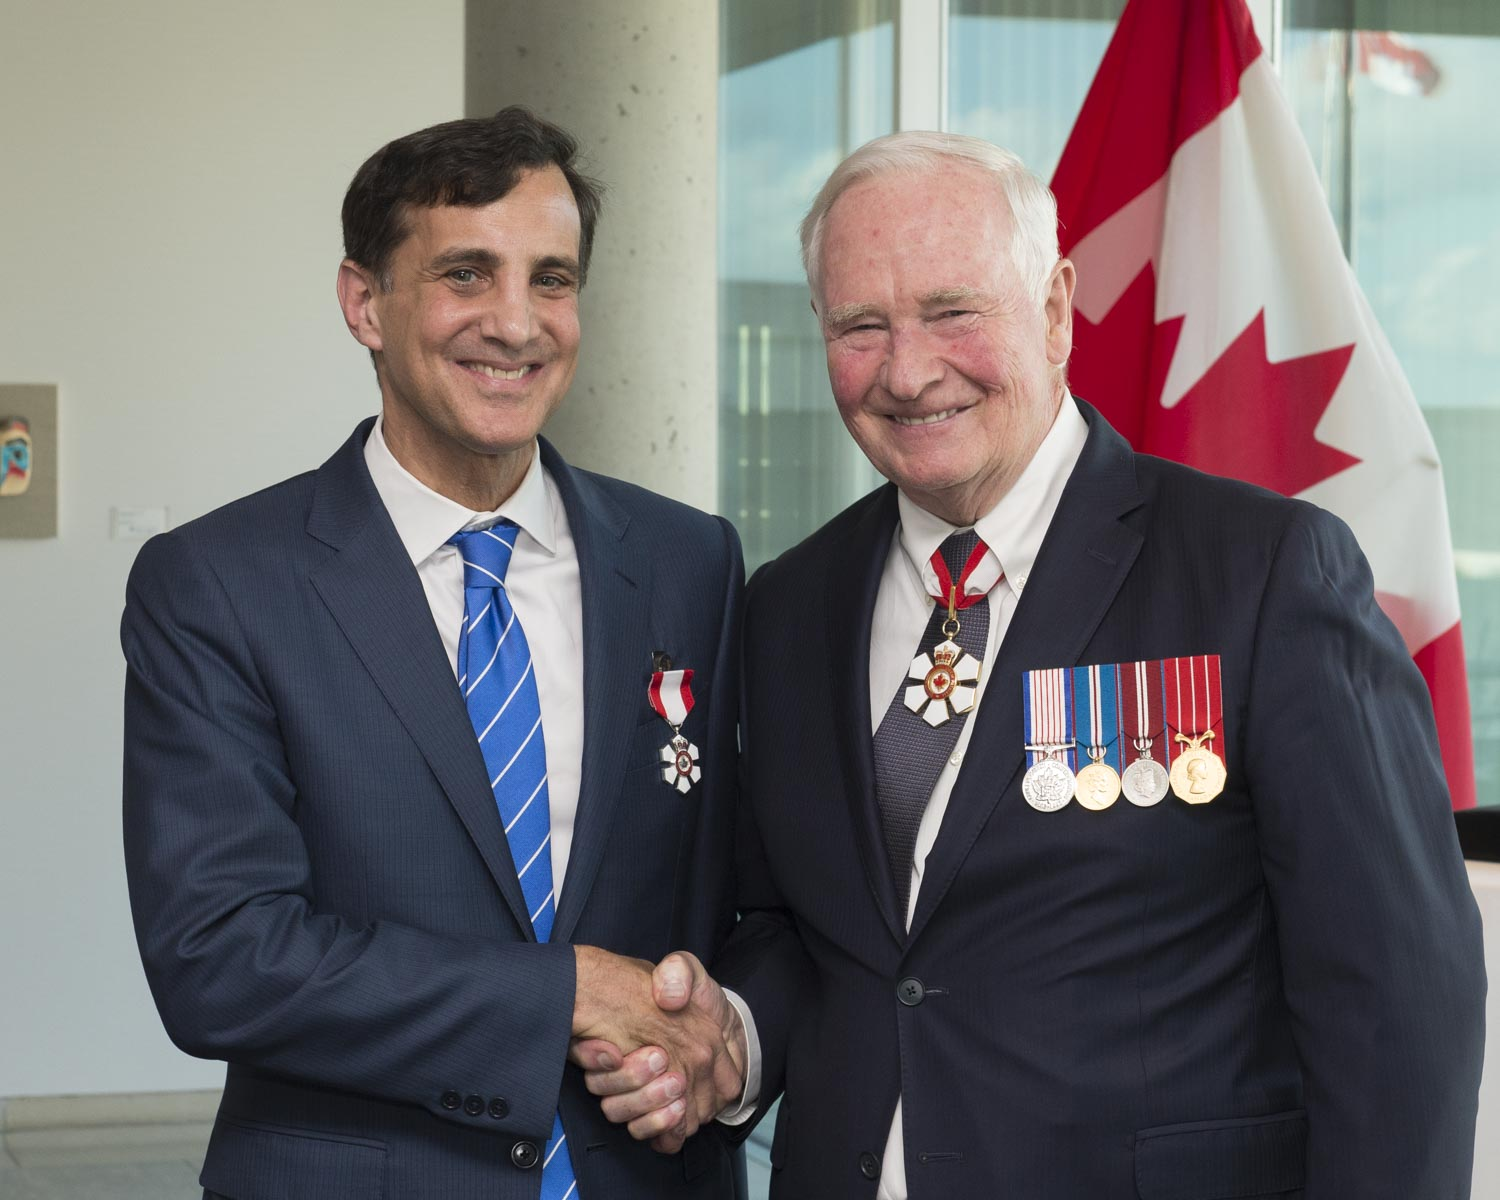 During this visit, His Excellency invested Mr. Ronald J. Daniels as a Member of the Order of Canada. 